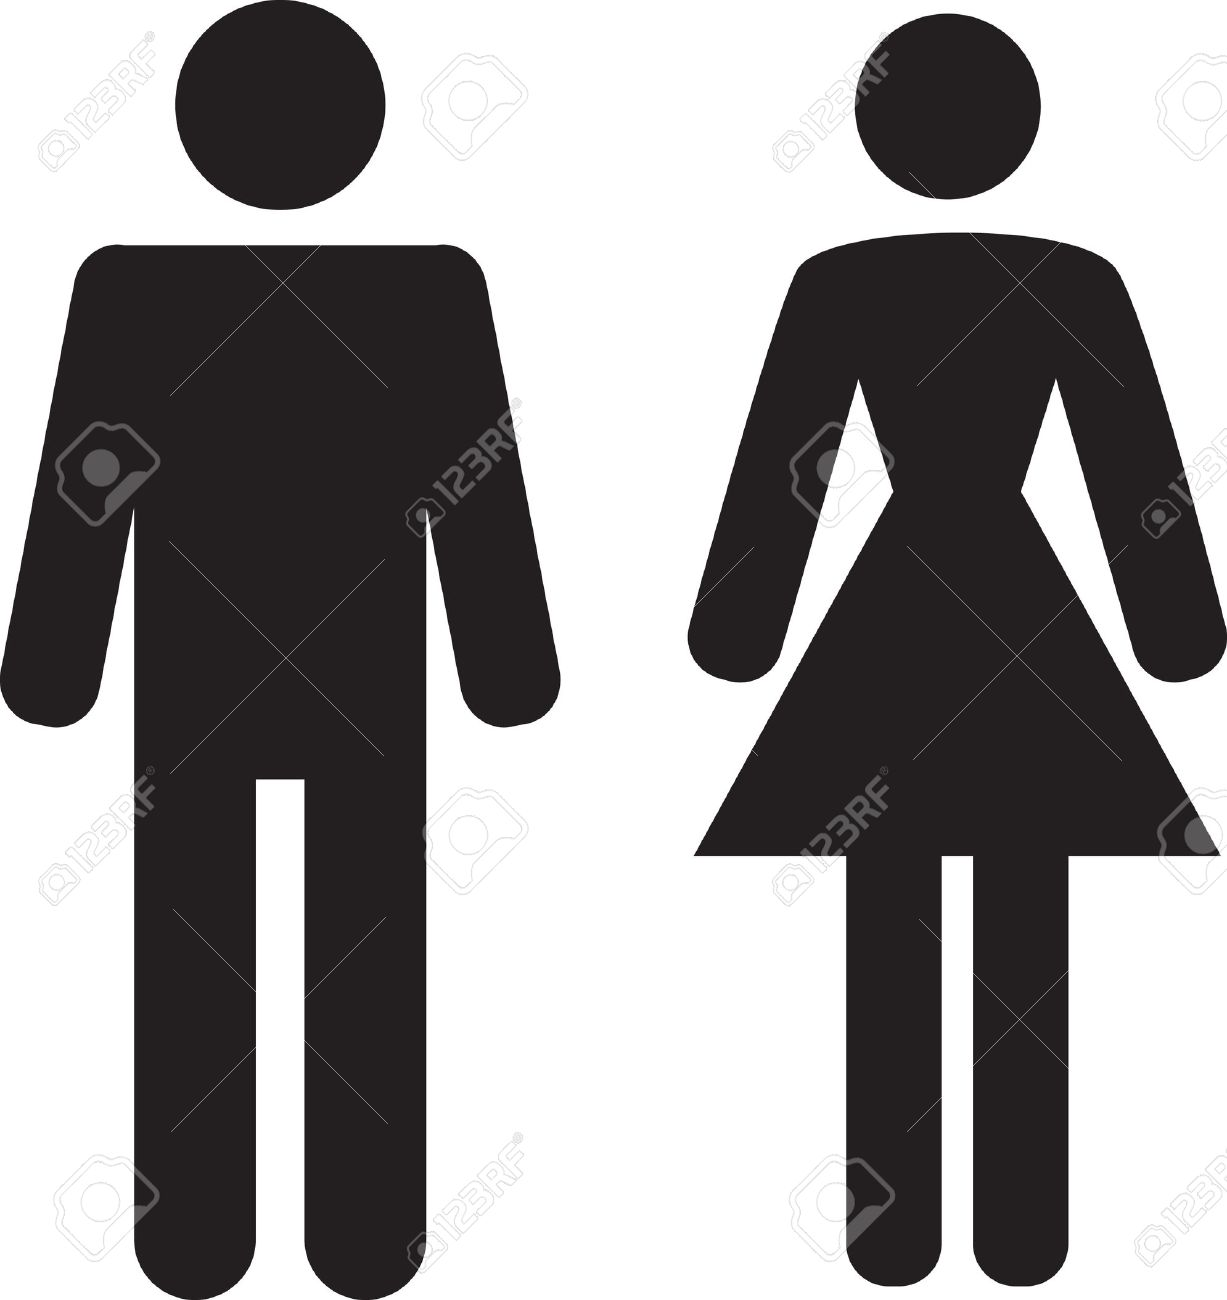 Male Female Bathroom Symbols Alluring 28830 Toilet Symbol Cliparts Stock Vector And Royalty Free Inspiration Design